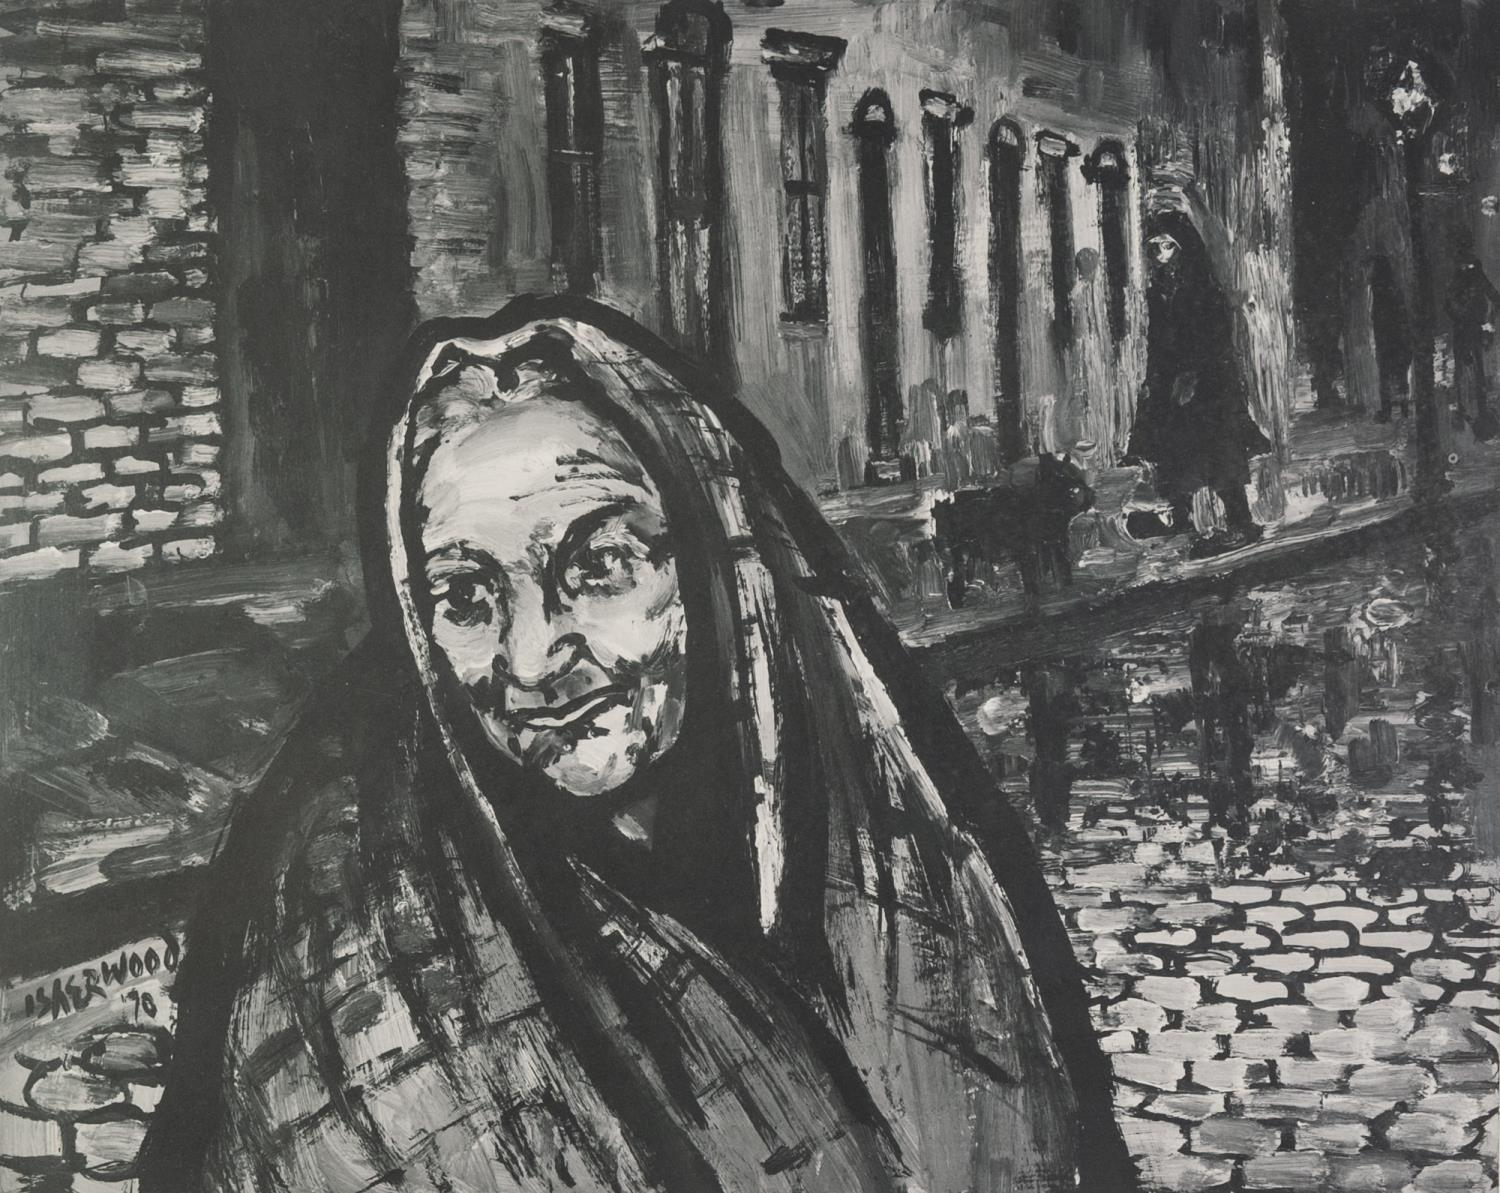 Lot 71 - LAWRENCE ISHERWOOD (1917 - 1988) ARTIST SIGNED LIMITED EDITION BLACK AND WHITE PRINT ?Gracie